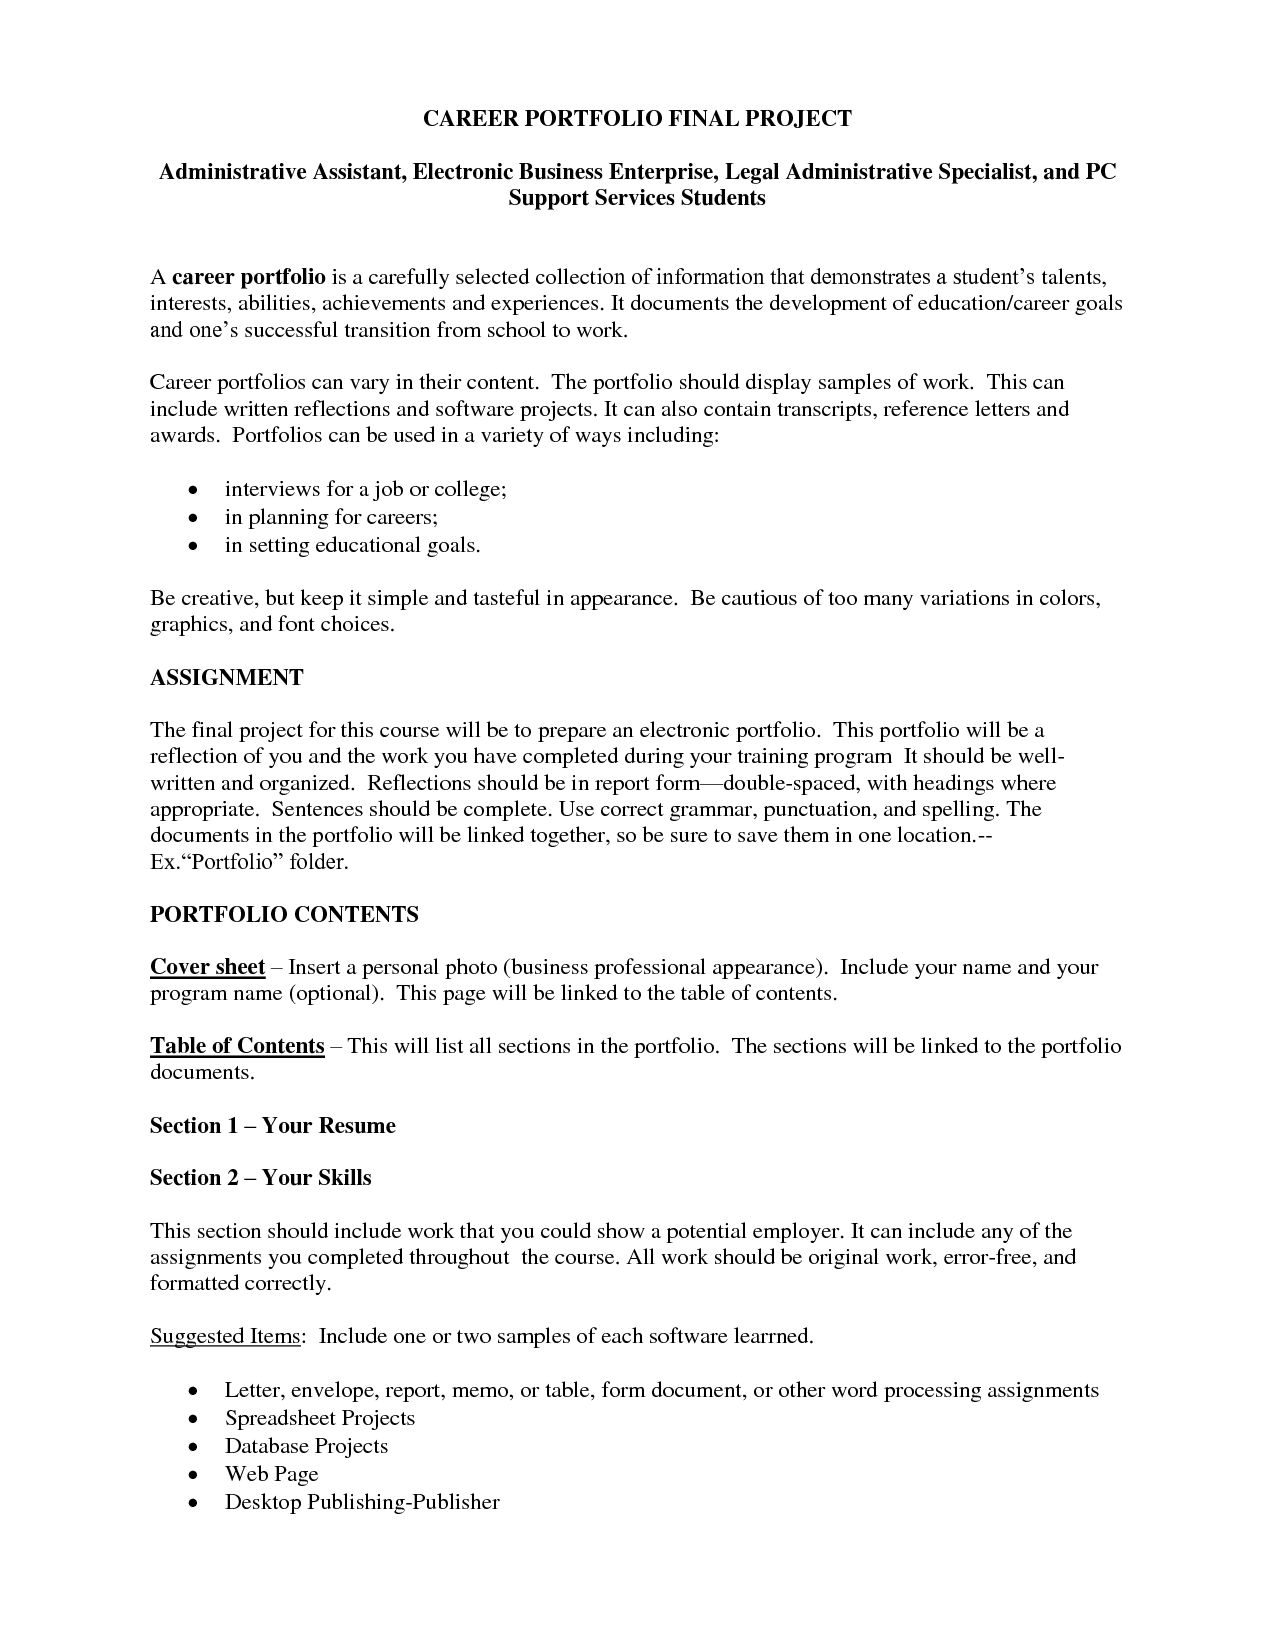 Resume Template For Administrative Assistant Sample Cover